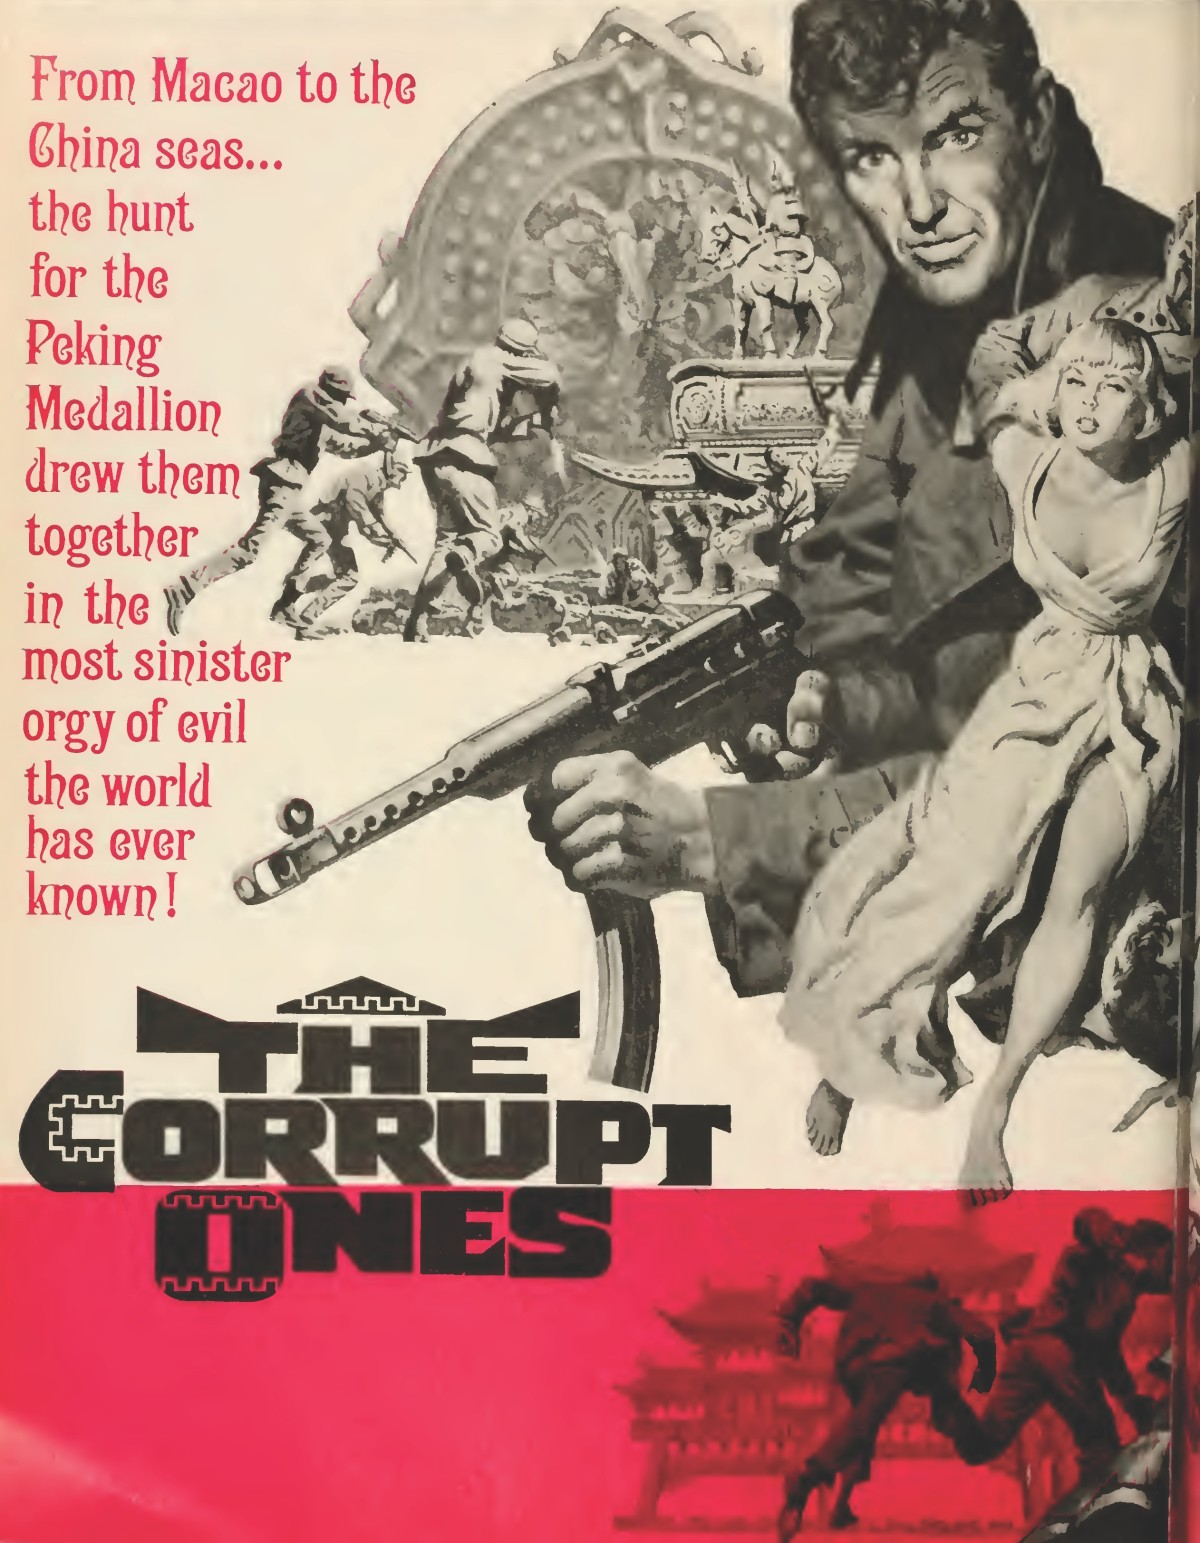 The Corrupt Ones / The Peking Medallion (1967) ****